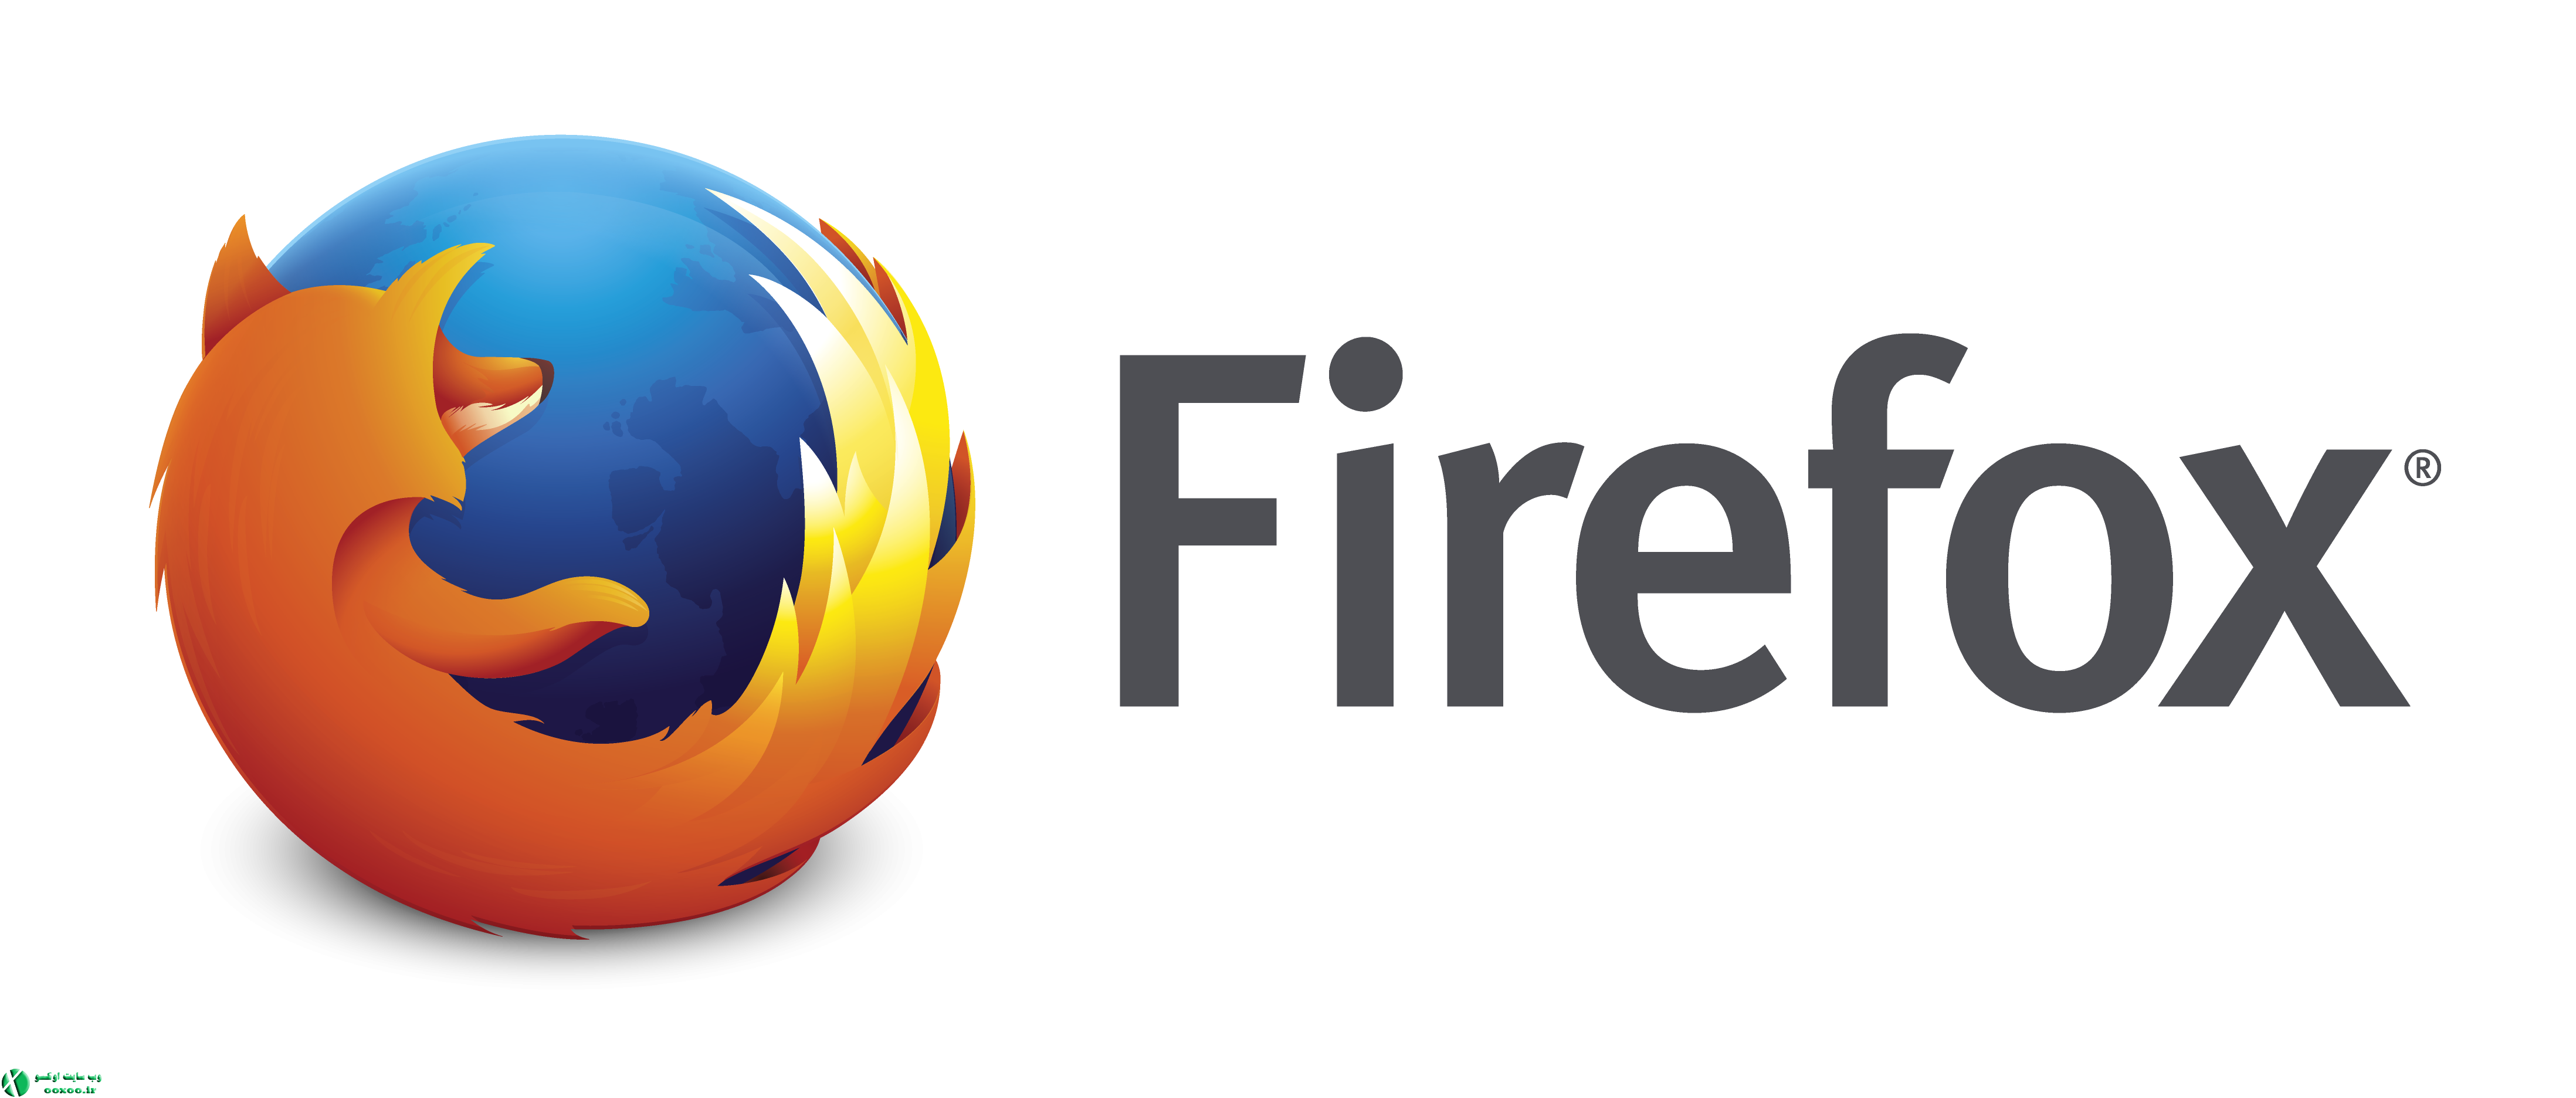 logo-wallpapers-firefox-logo-wallpaper-36076